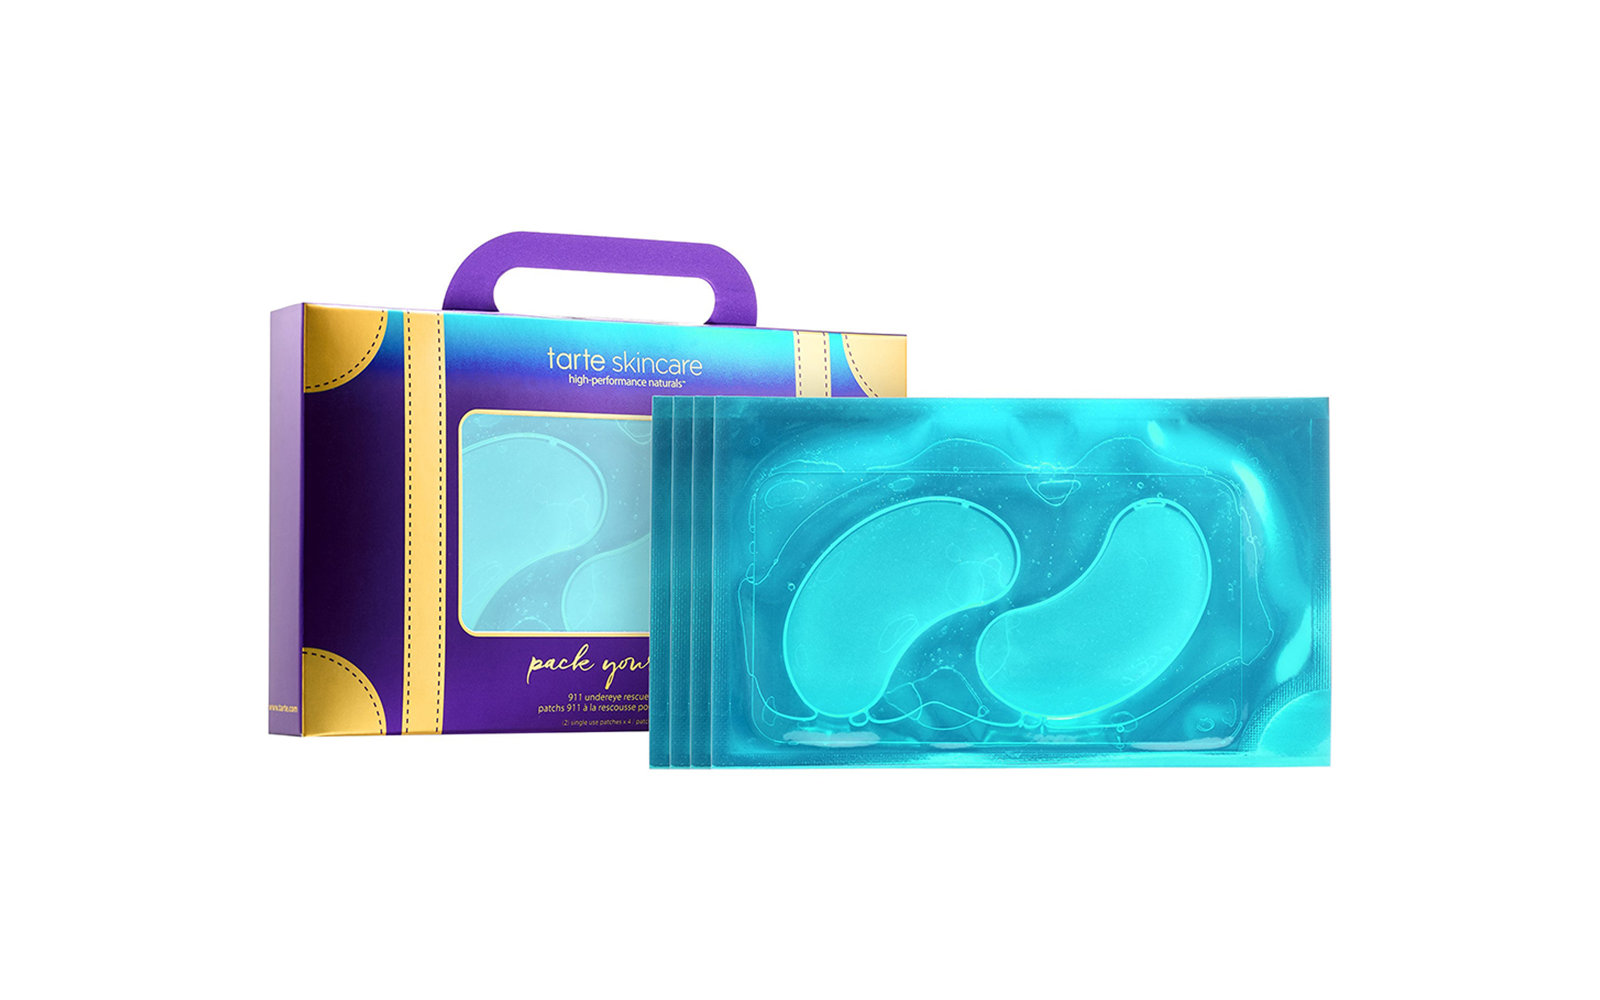 Tarte Pack Your Bags Patches